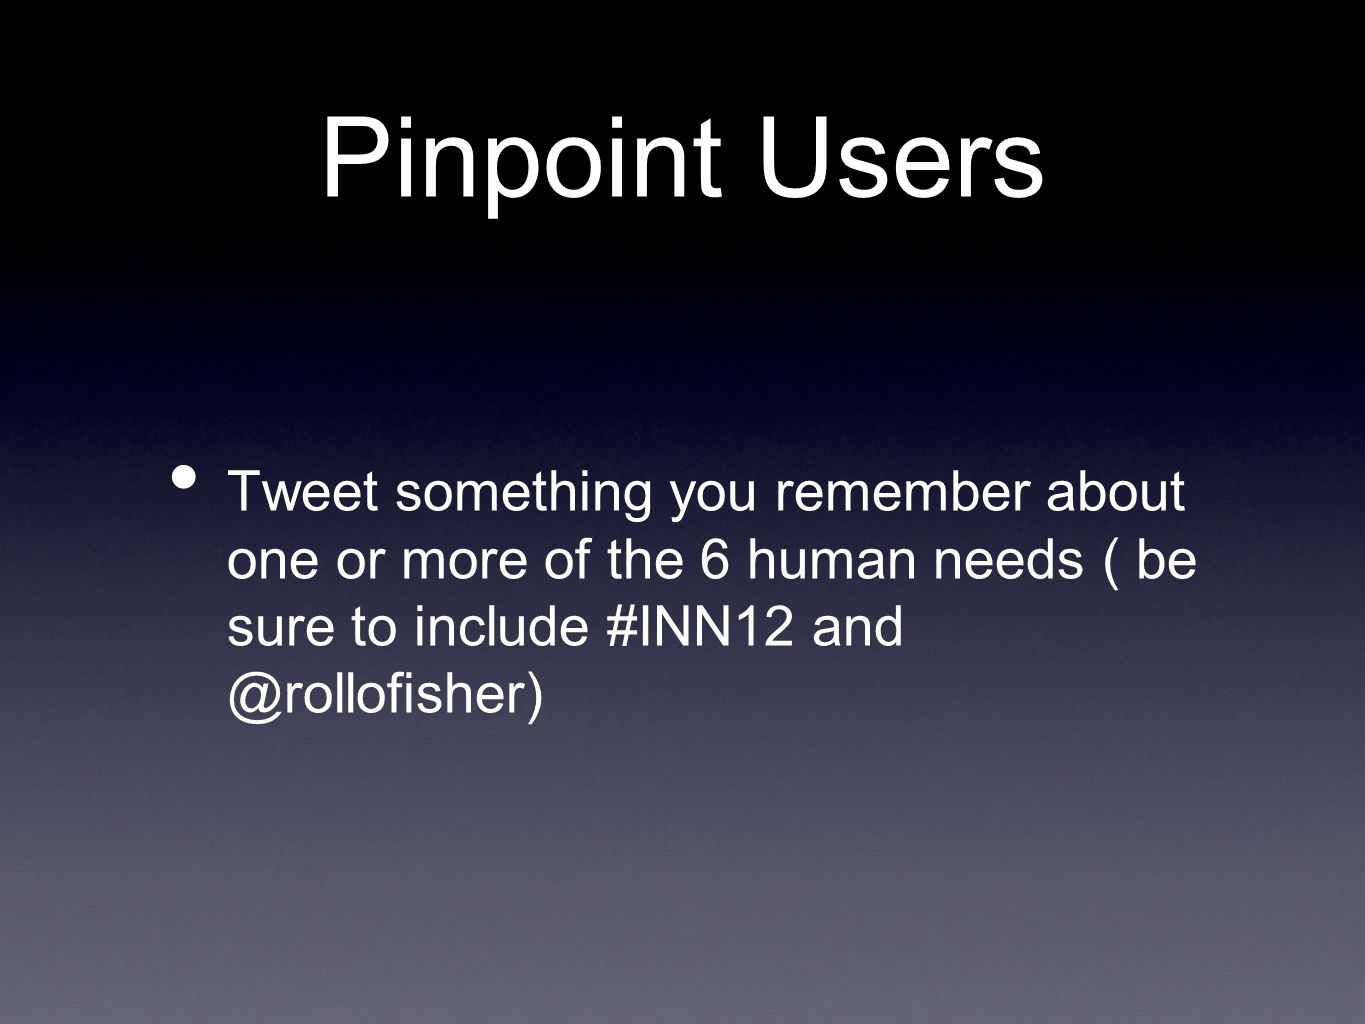 Pinpoint Users Tweet something you remember about one or more of the 6 human needs ( be sure to include #INN12 and @rollofisher)